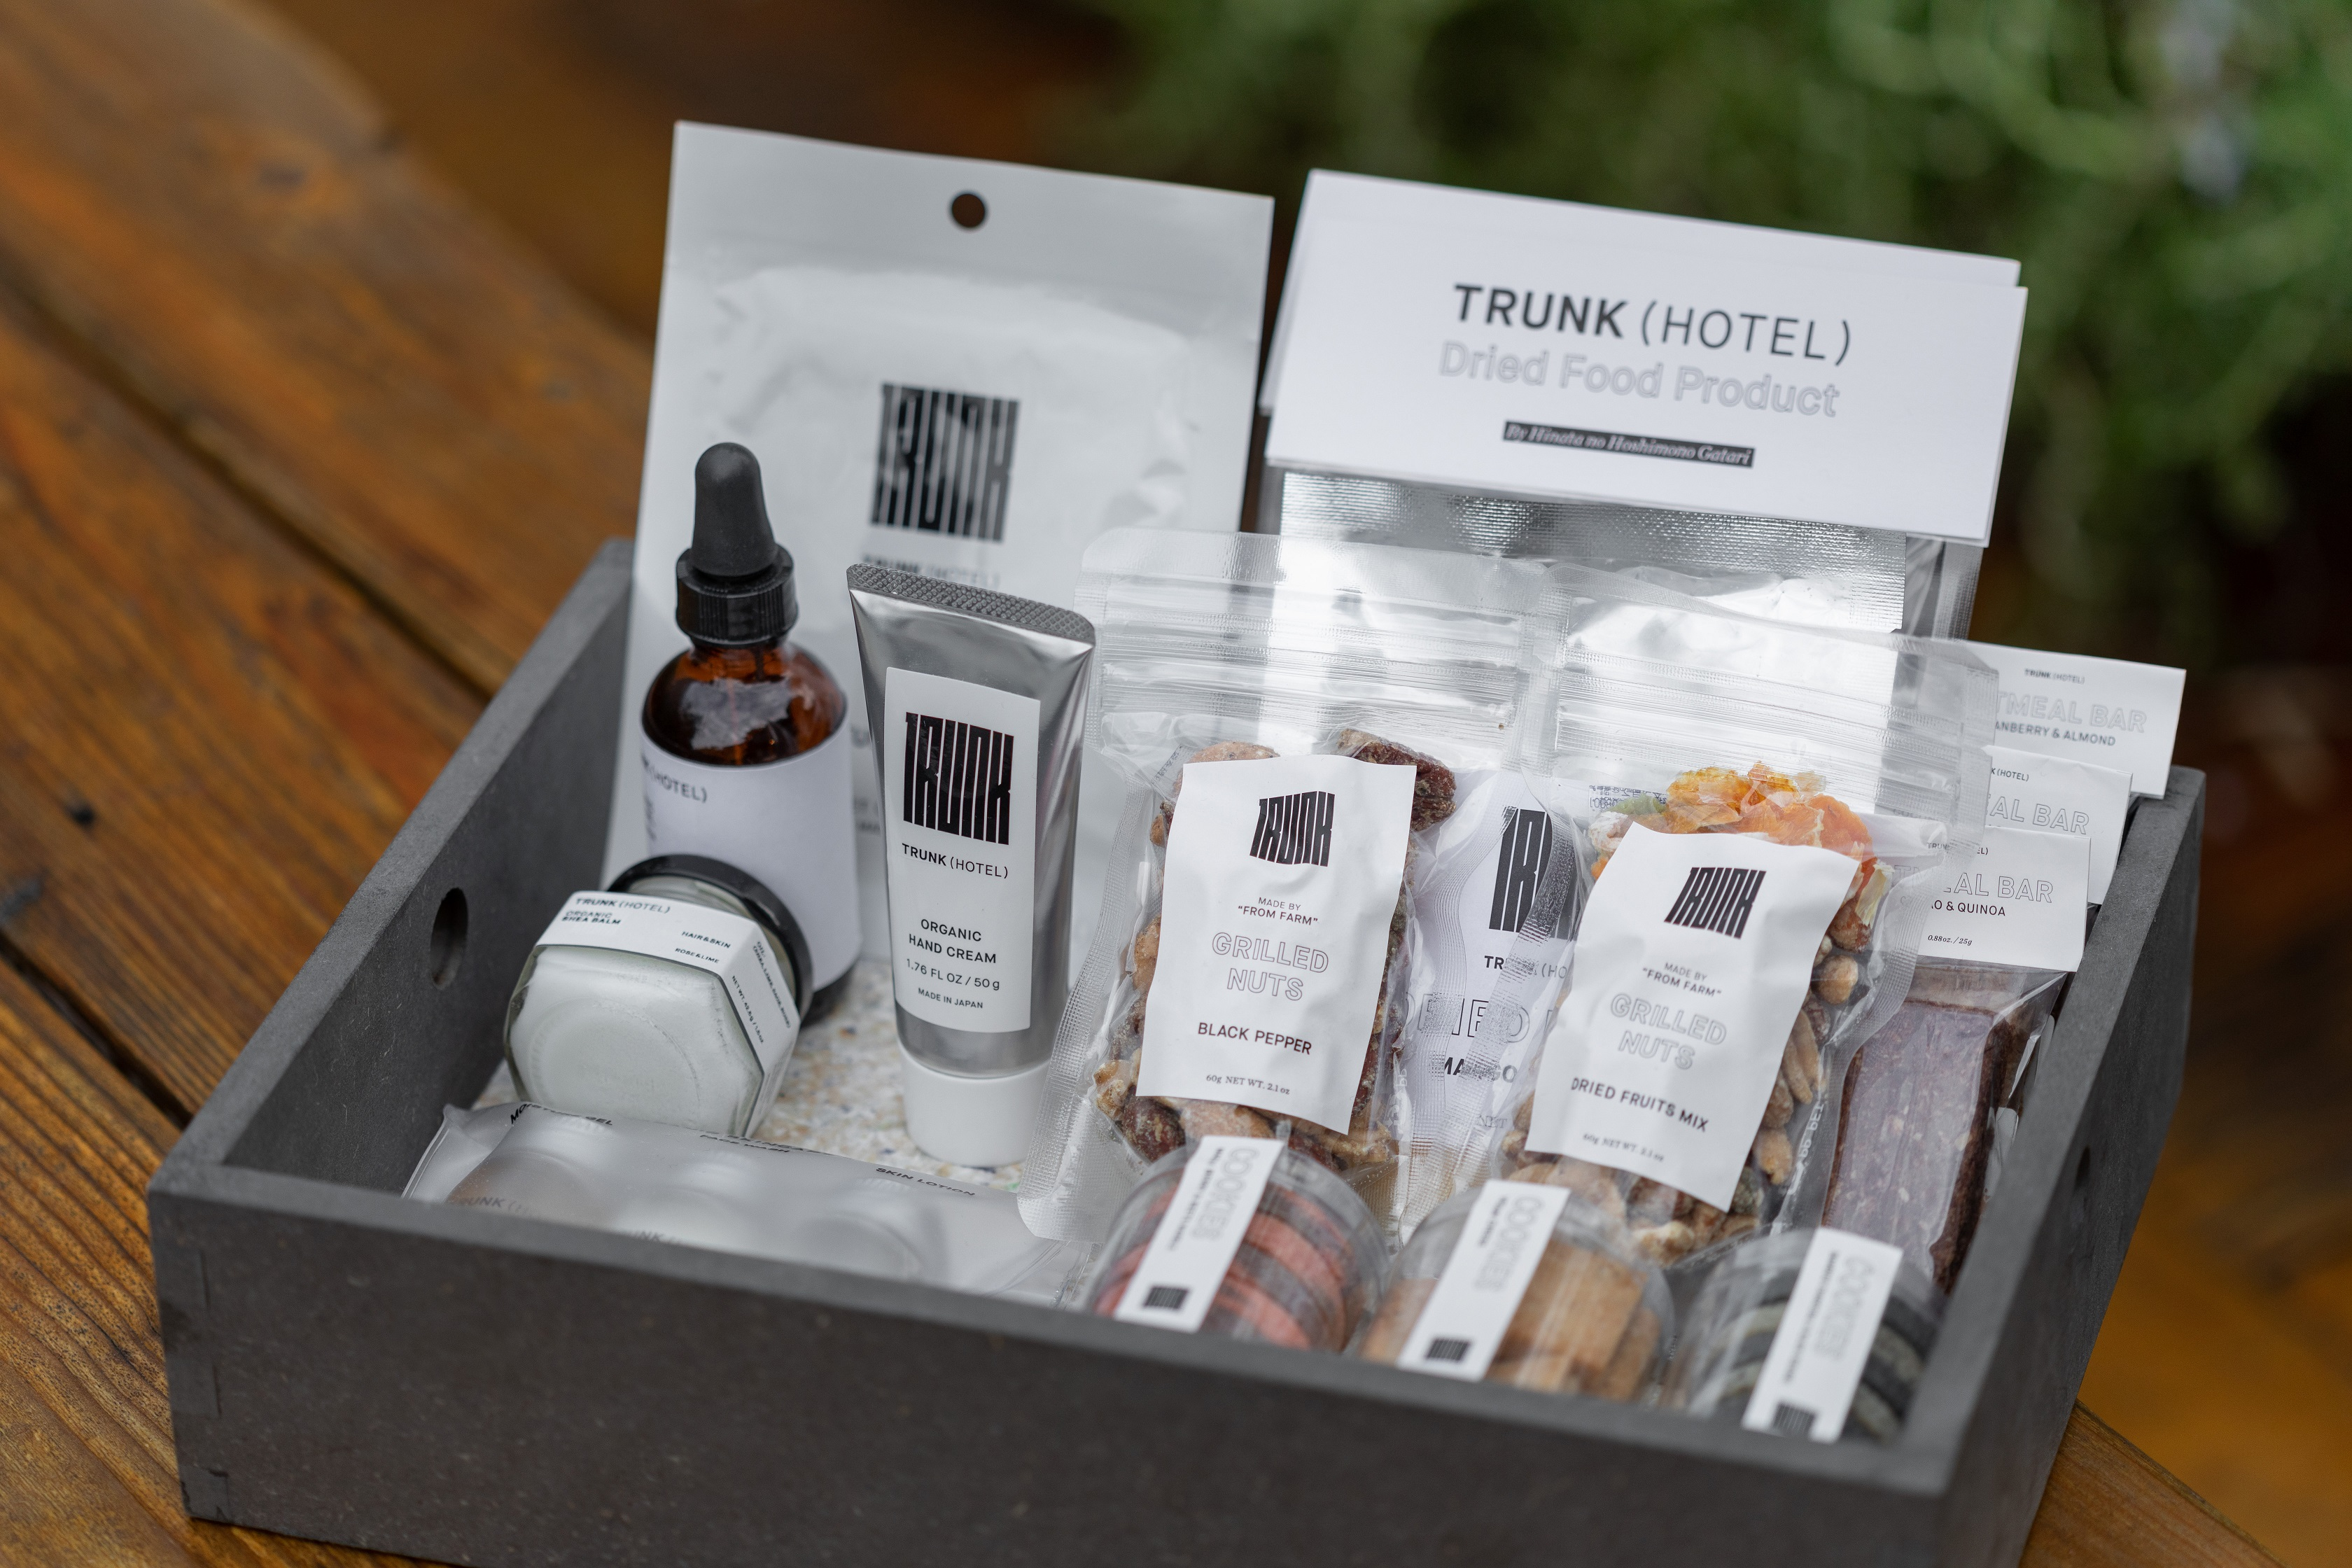 TRUNK (HOTEL) / Room Only